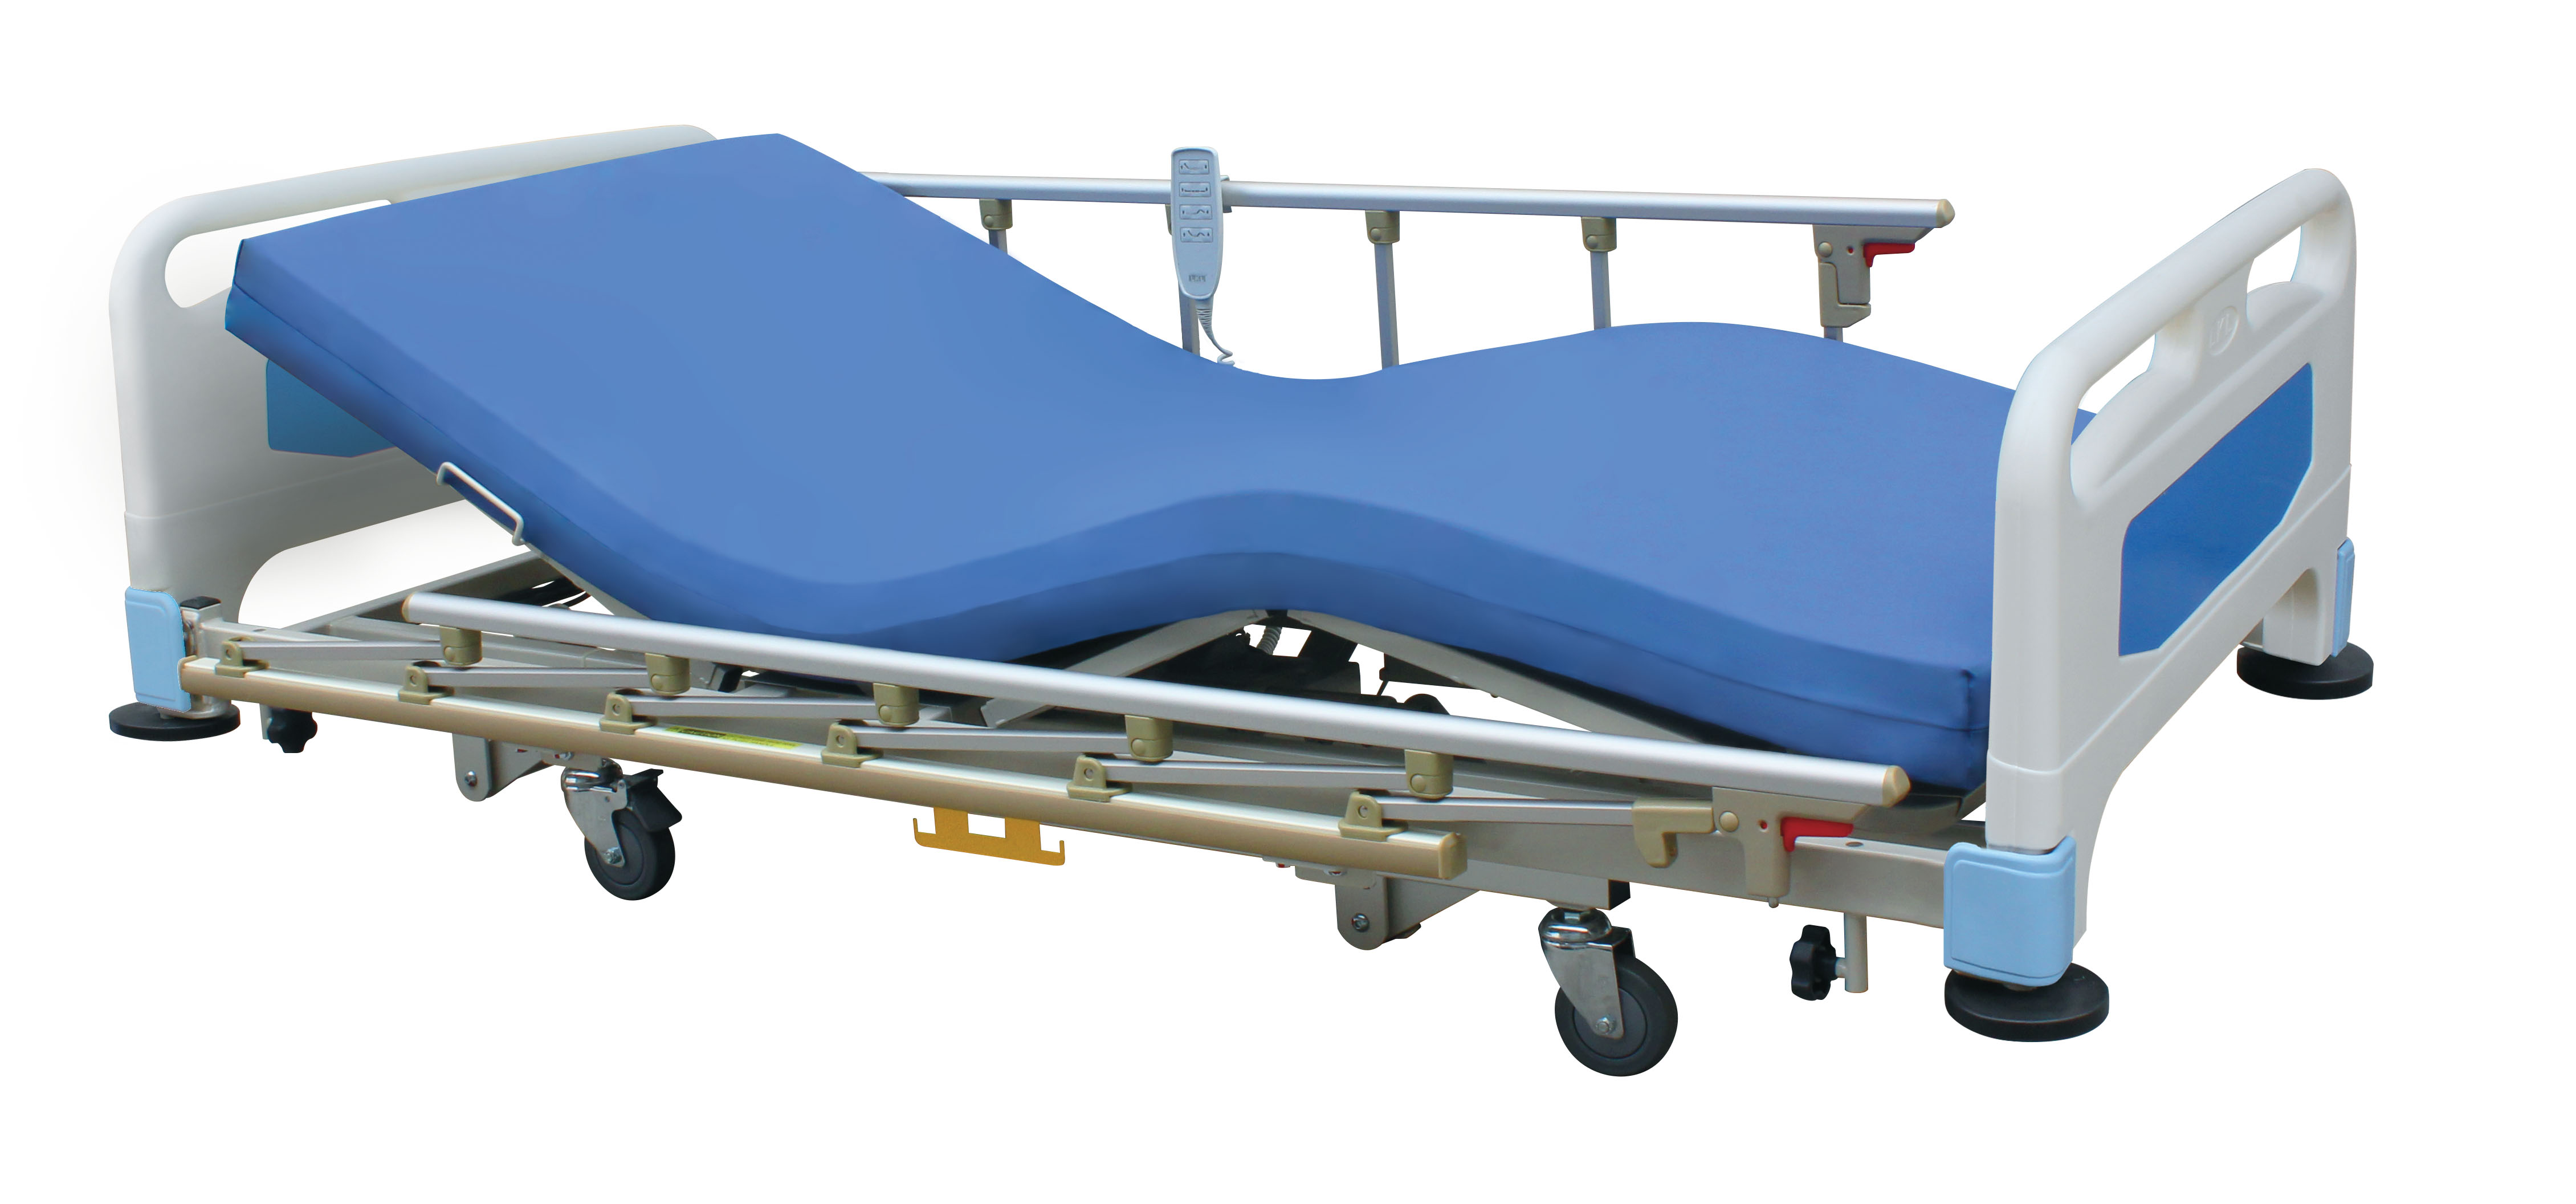 BA7001 Hospital Electrical Bed